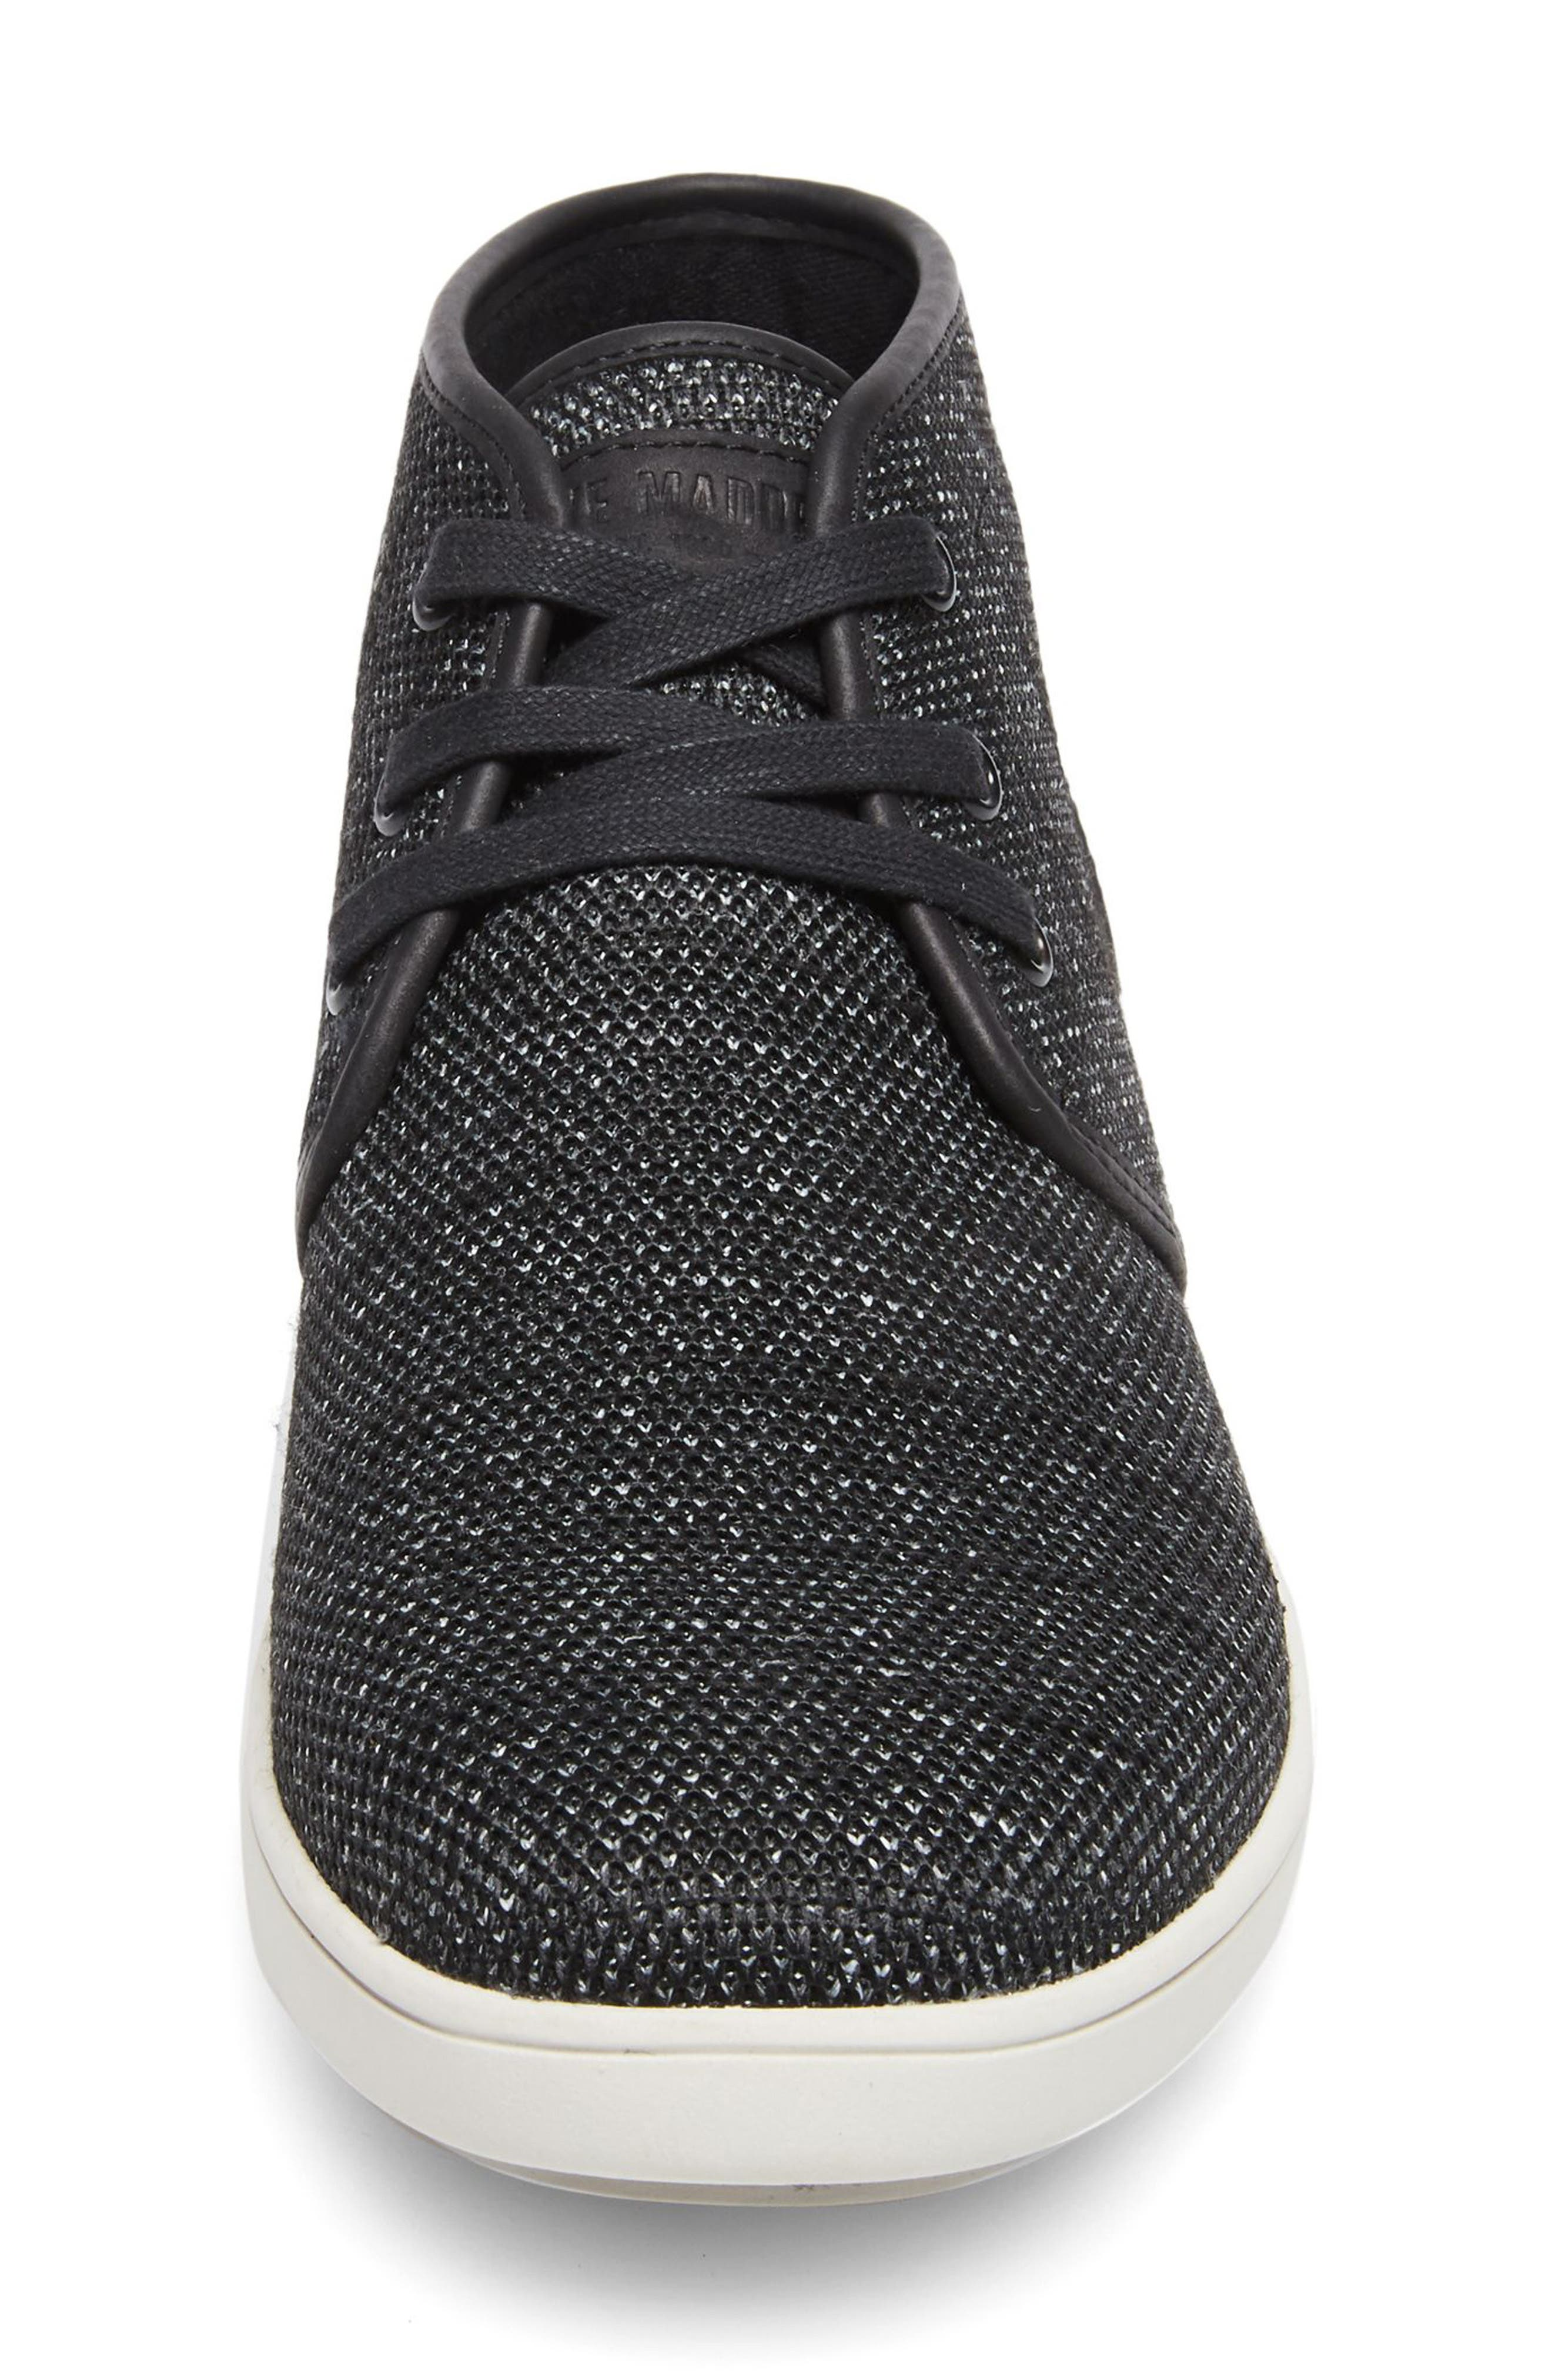 Fowler Knit Mid Top Sneaker,                             Alternate thumbnail 4, color,                             003